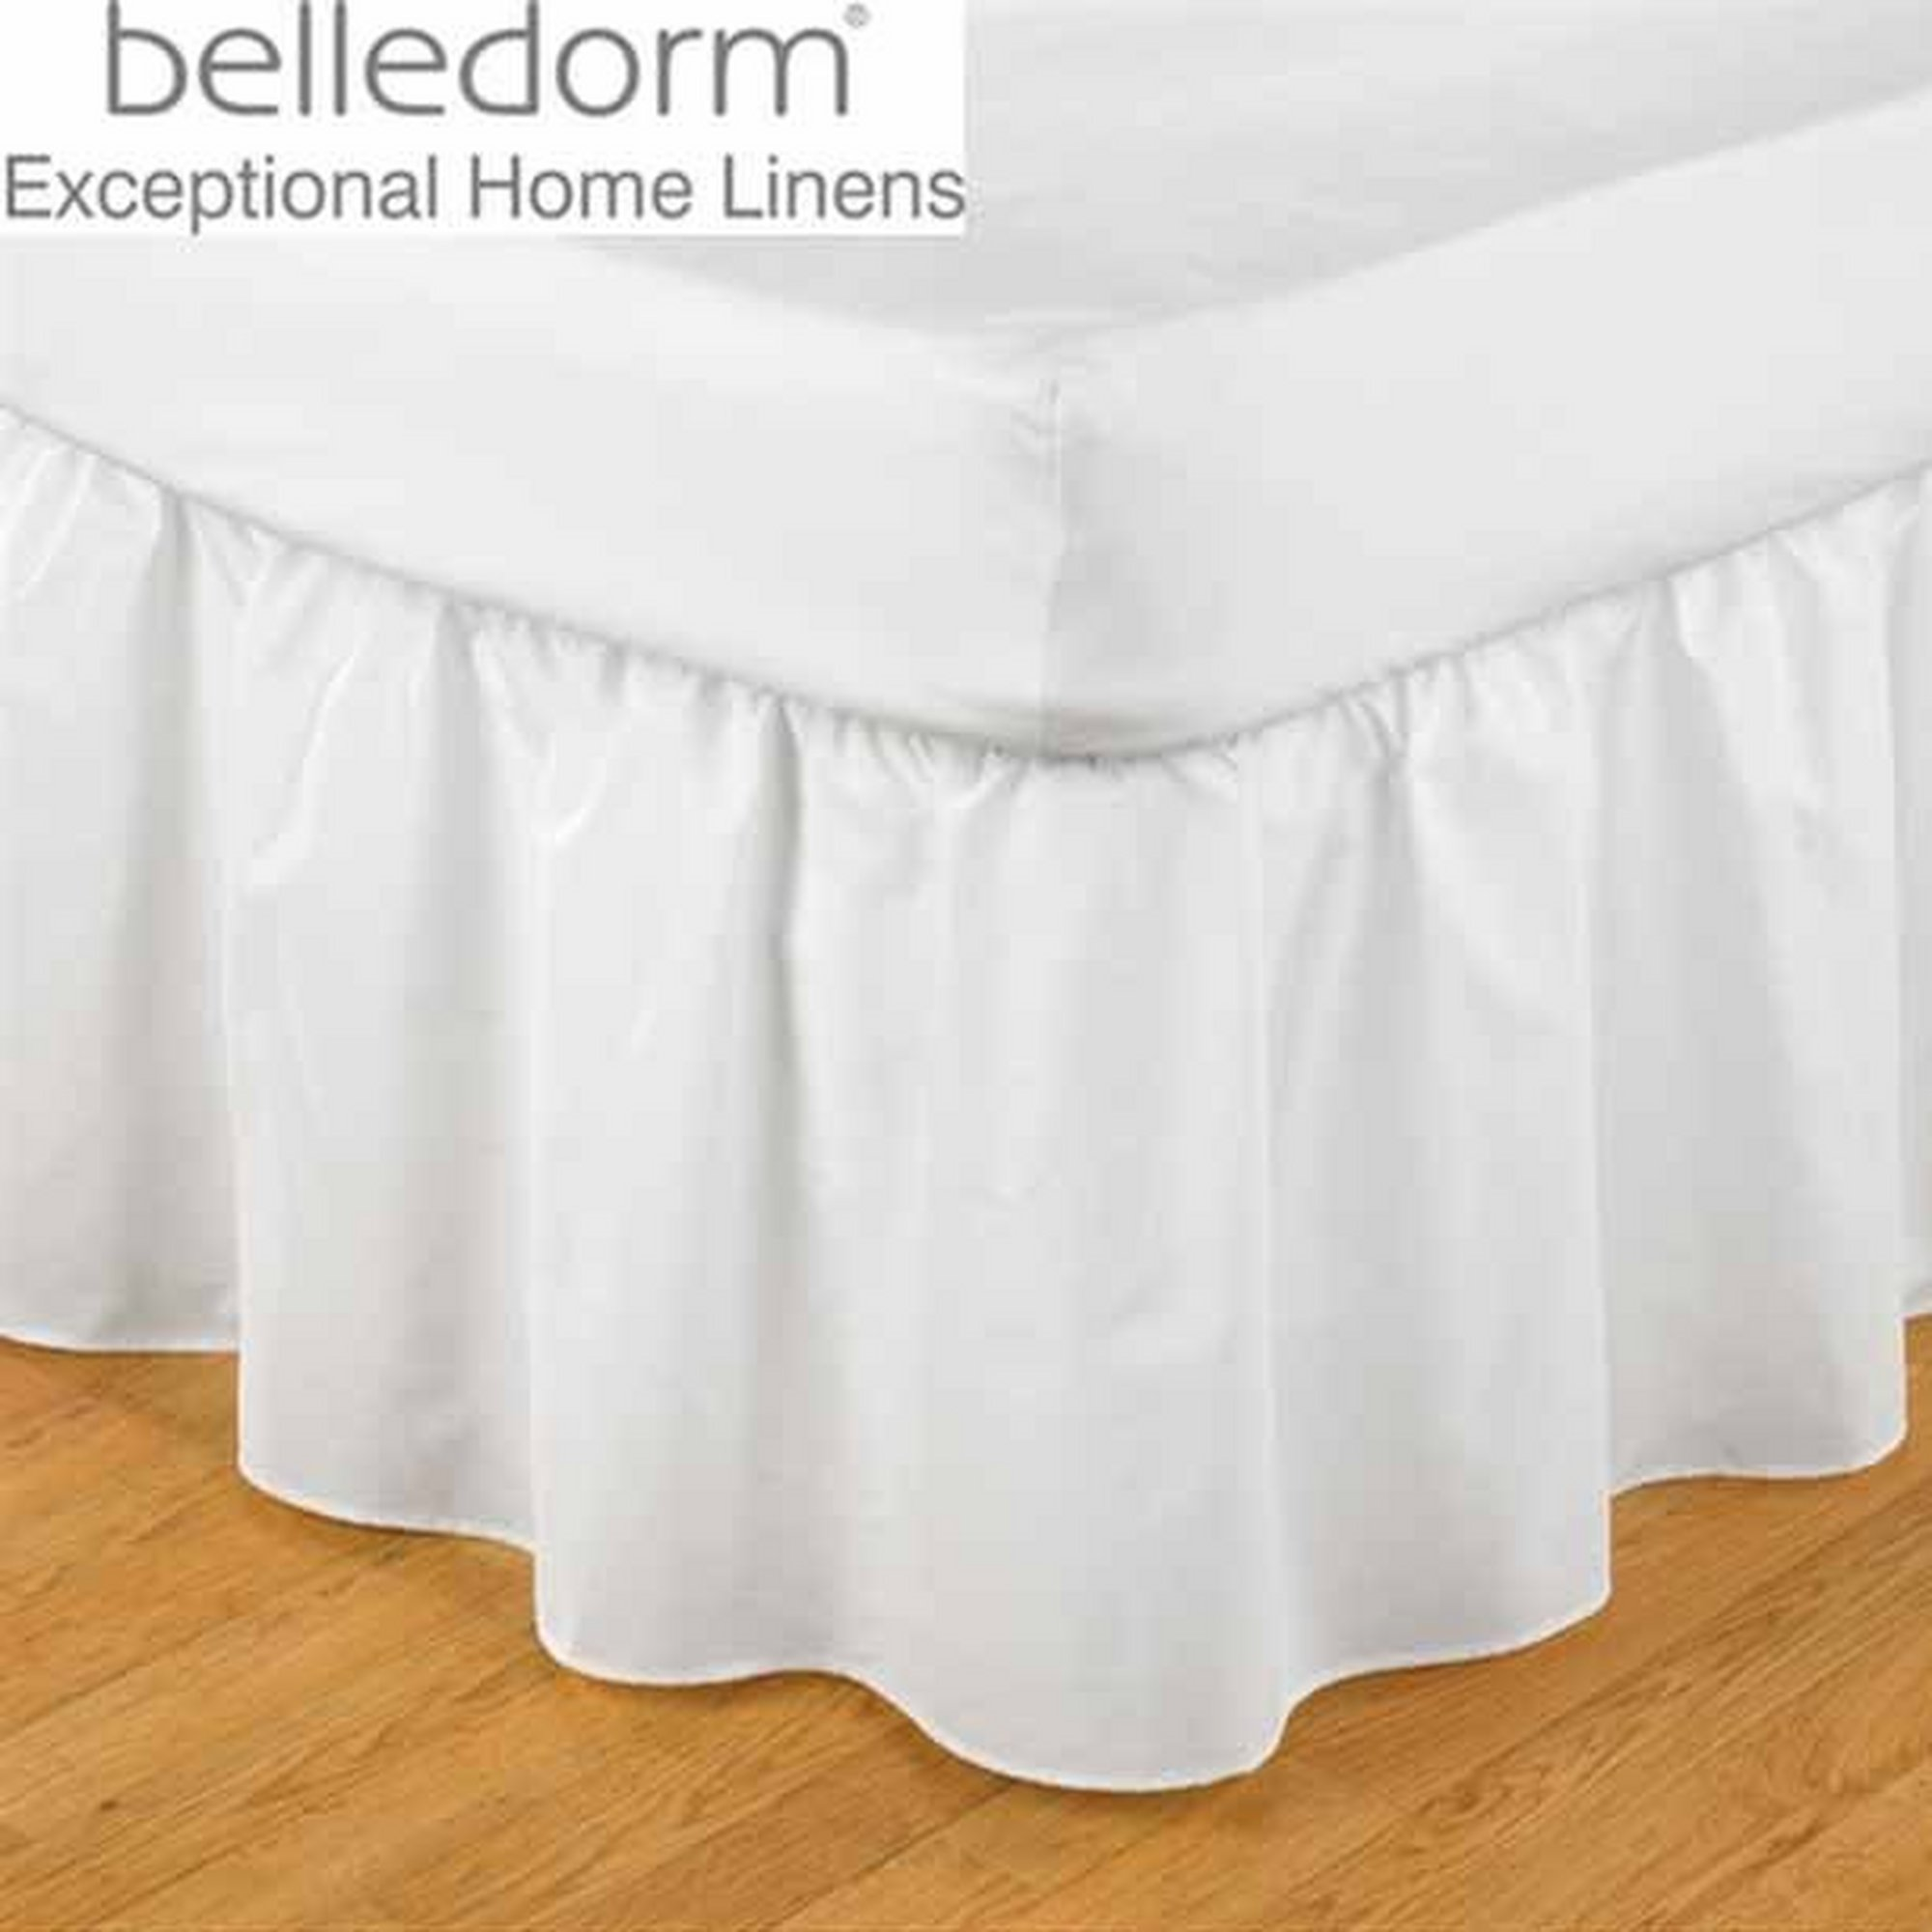 Image of Belledorm Easy Fit Frill Valance